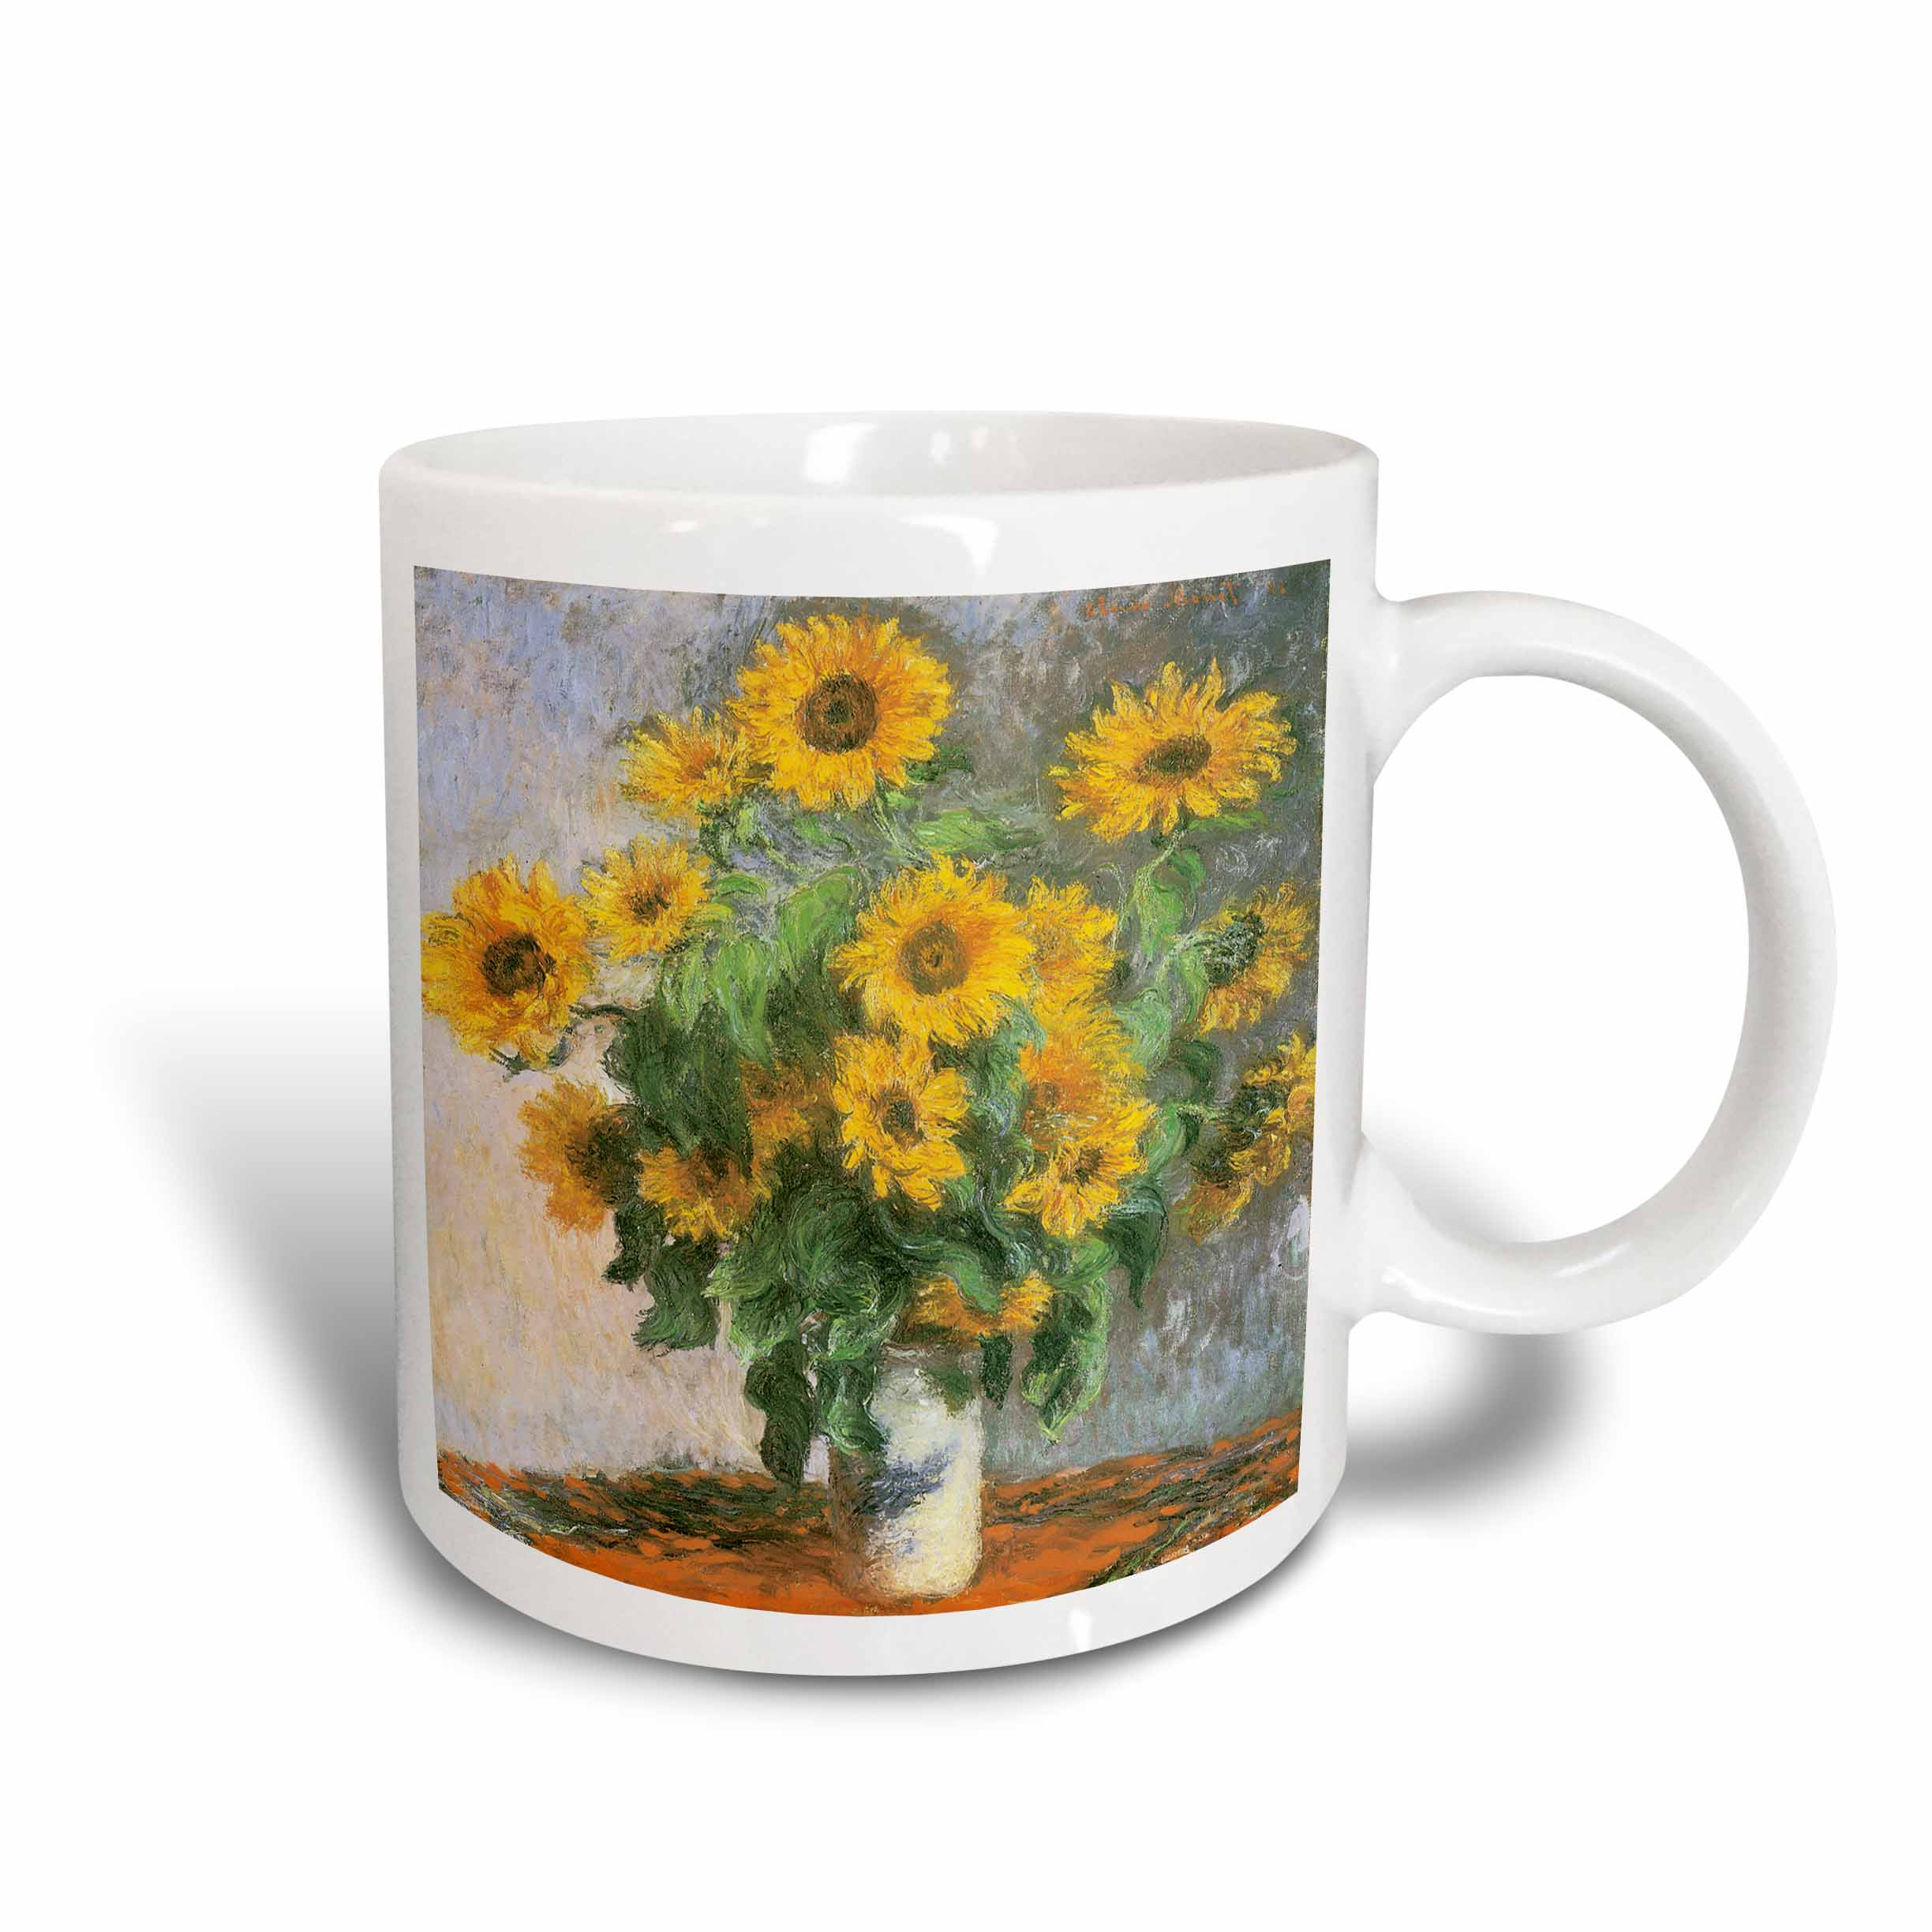 3dRose Sunflowers by Claude Monet, 1881 Impressionist Still Life Painting, Ceramic Mug, 15-ounce